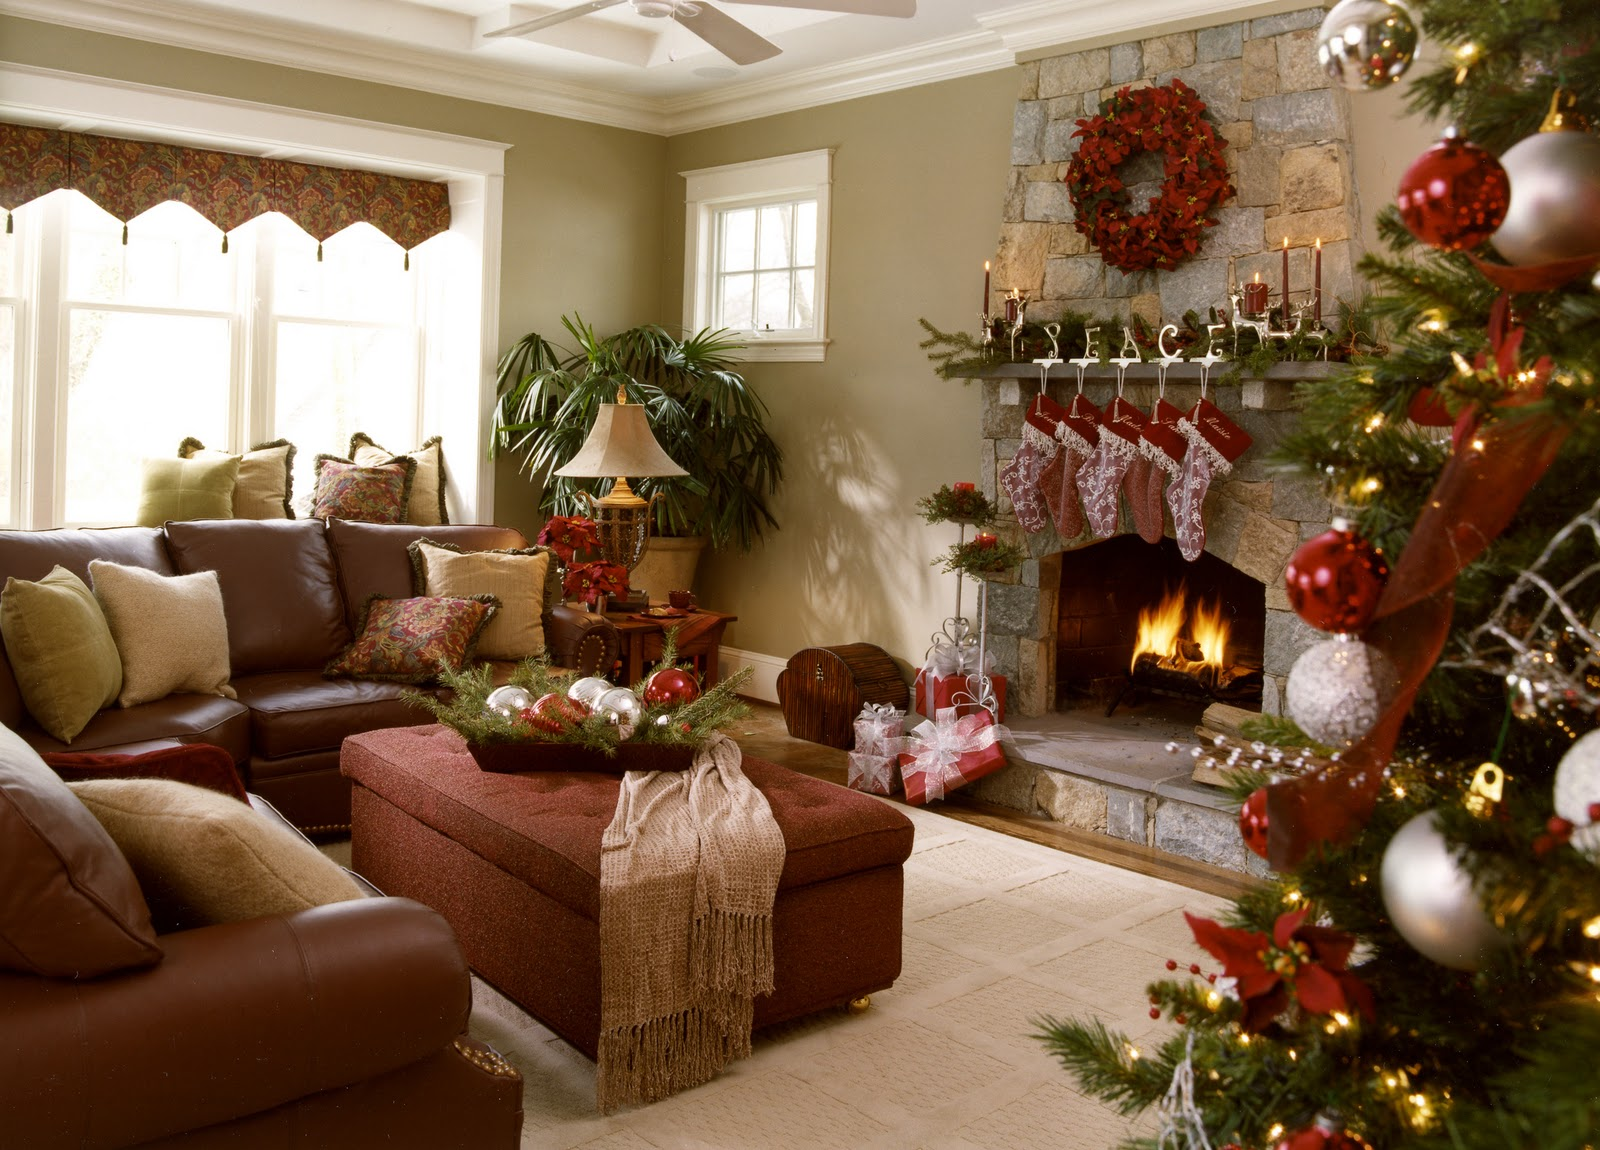 Nine ideas how to welcome the christmas spirit interior - Decorations ideas for living room ...